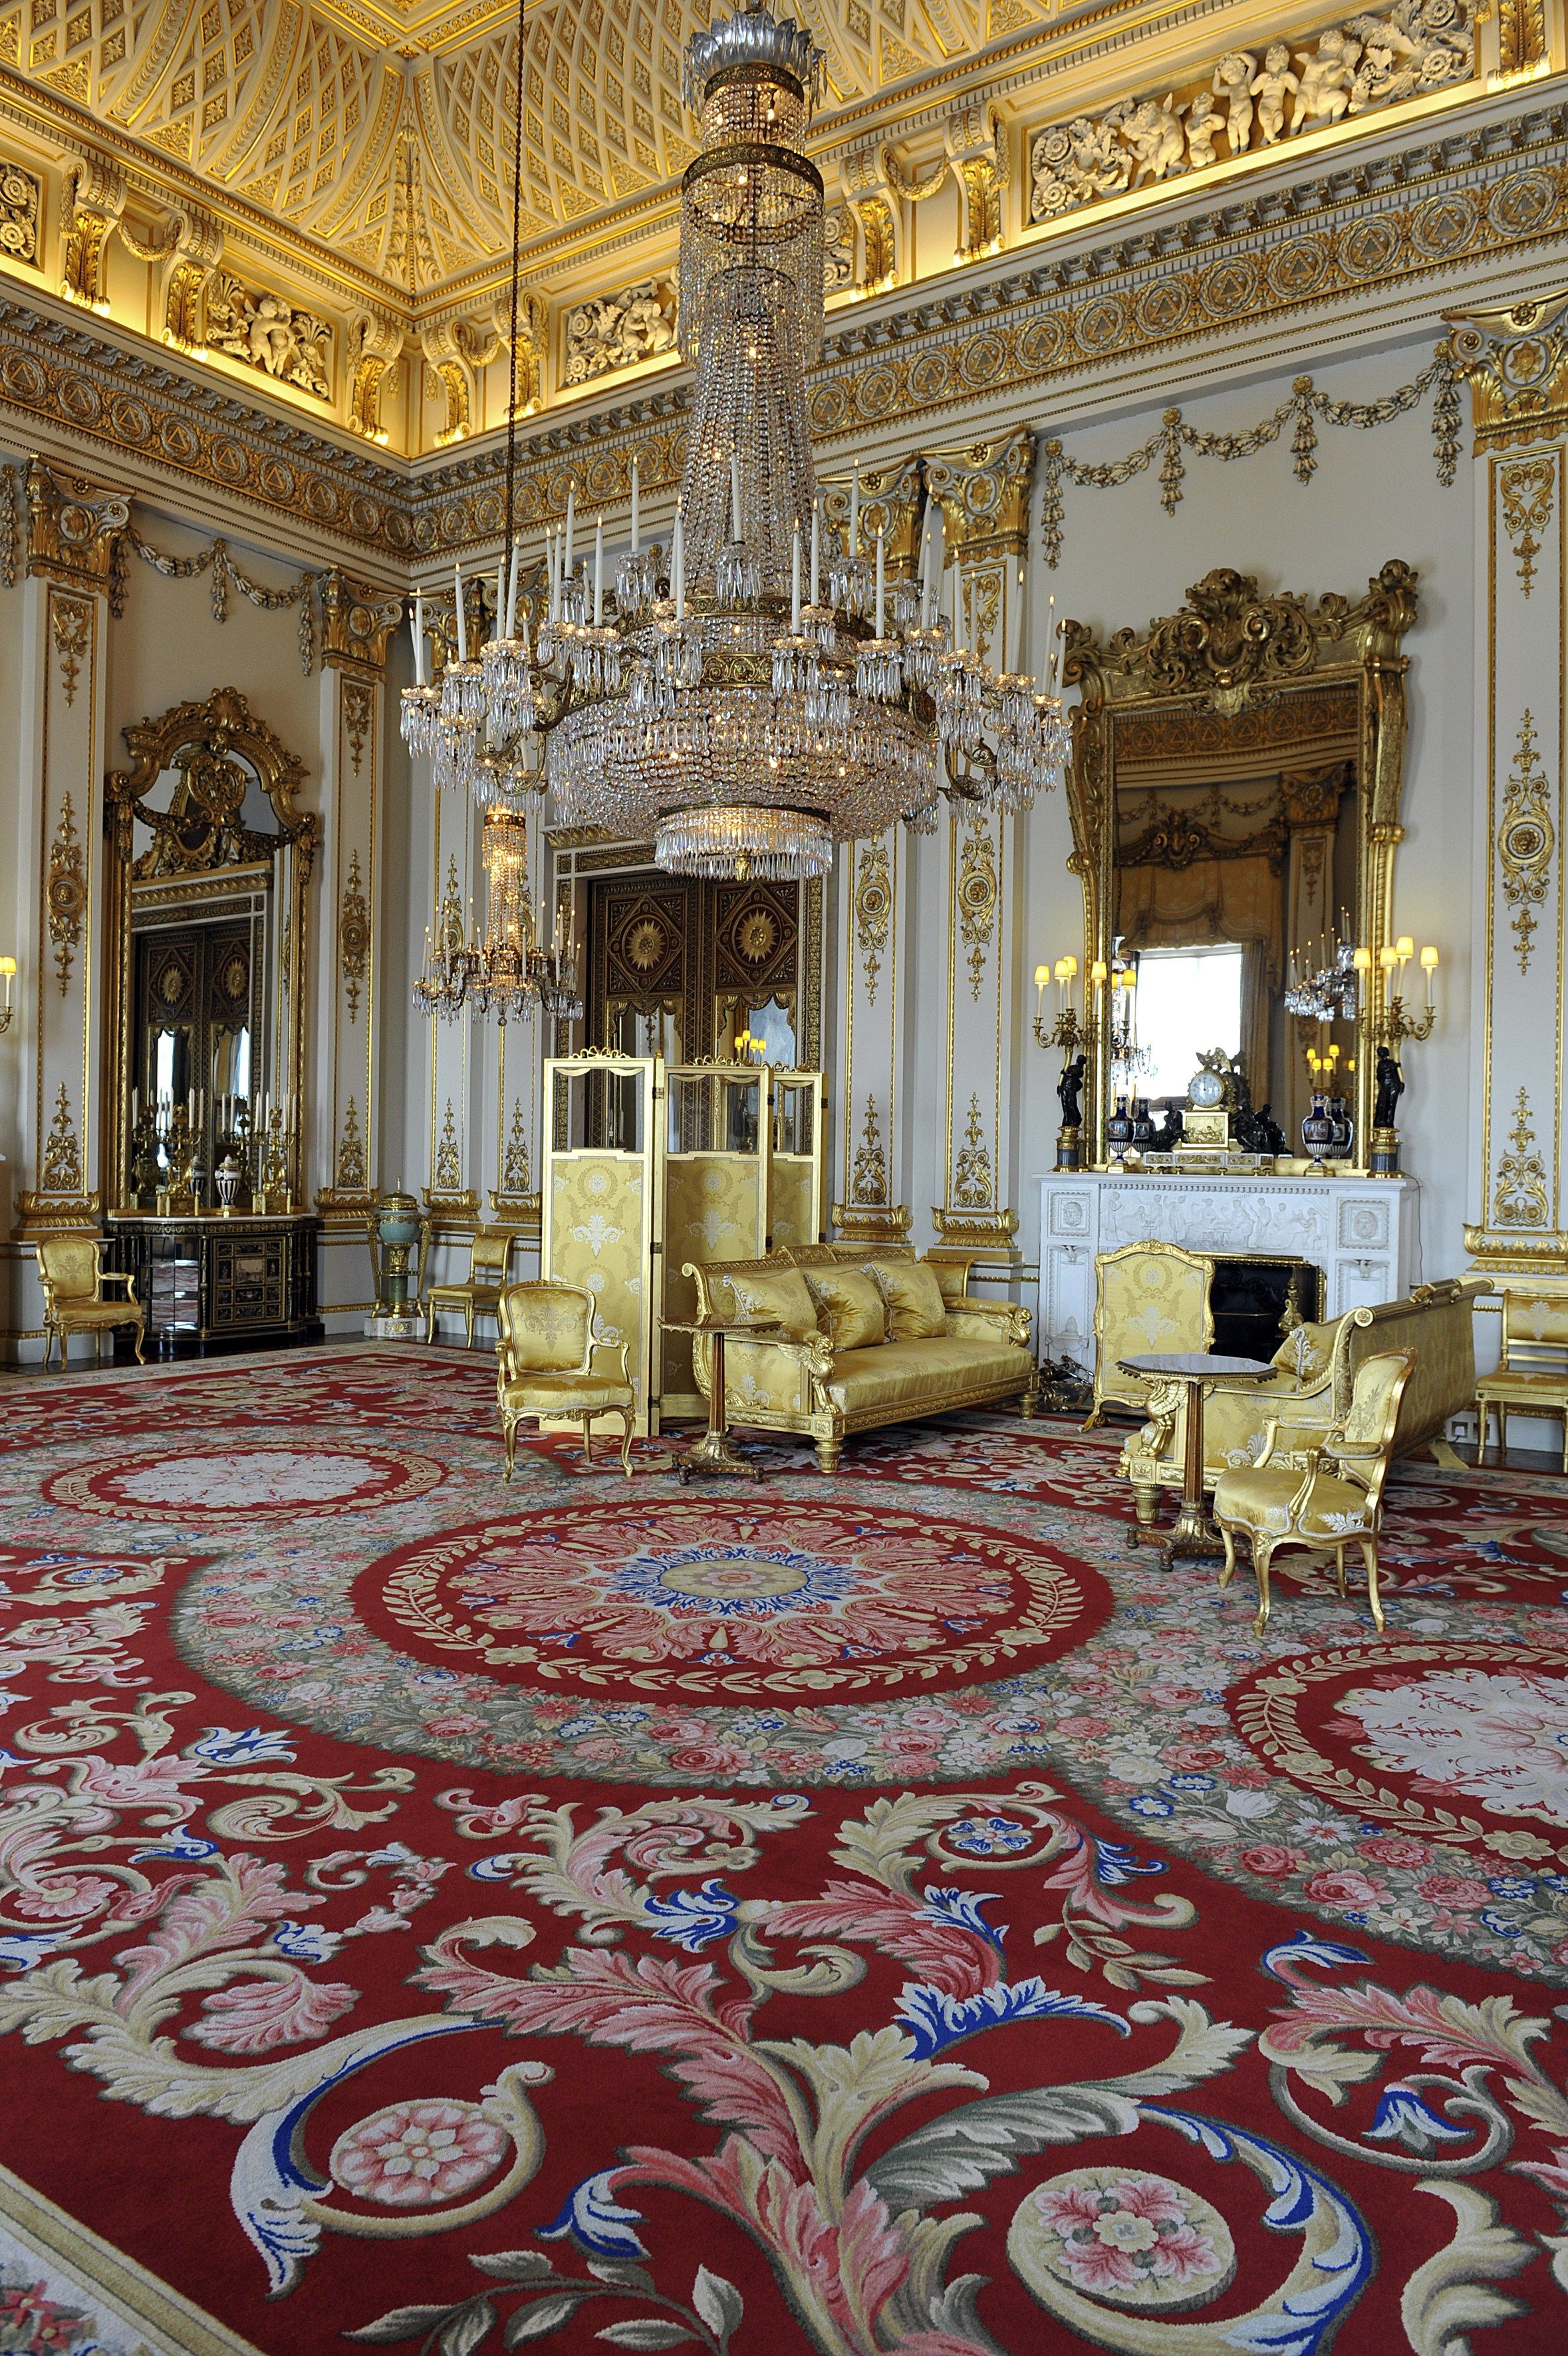 This is what Buckingham Palace would look like with a modern interior makeover